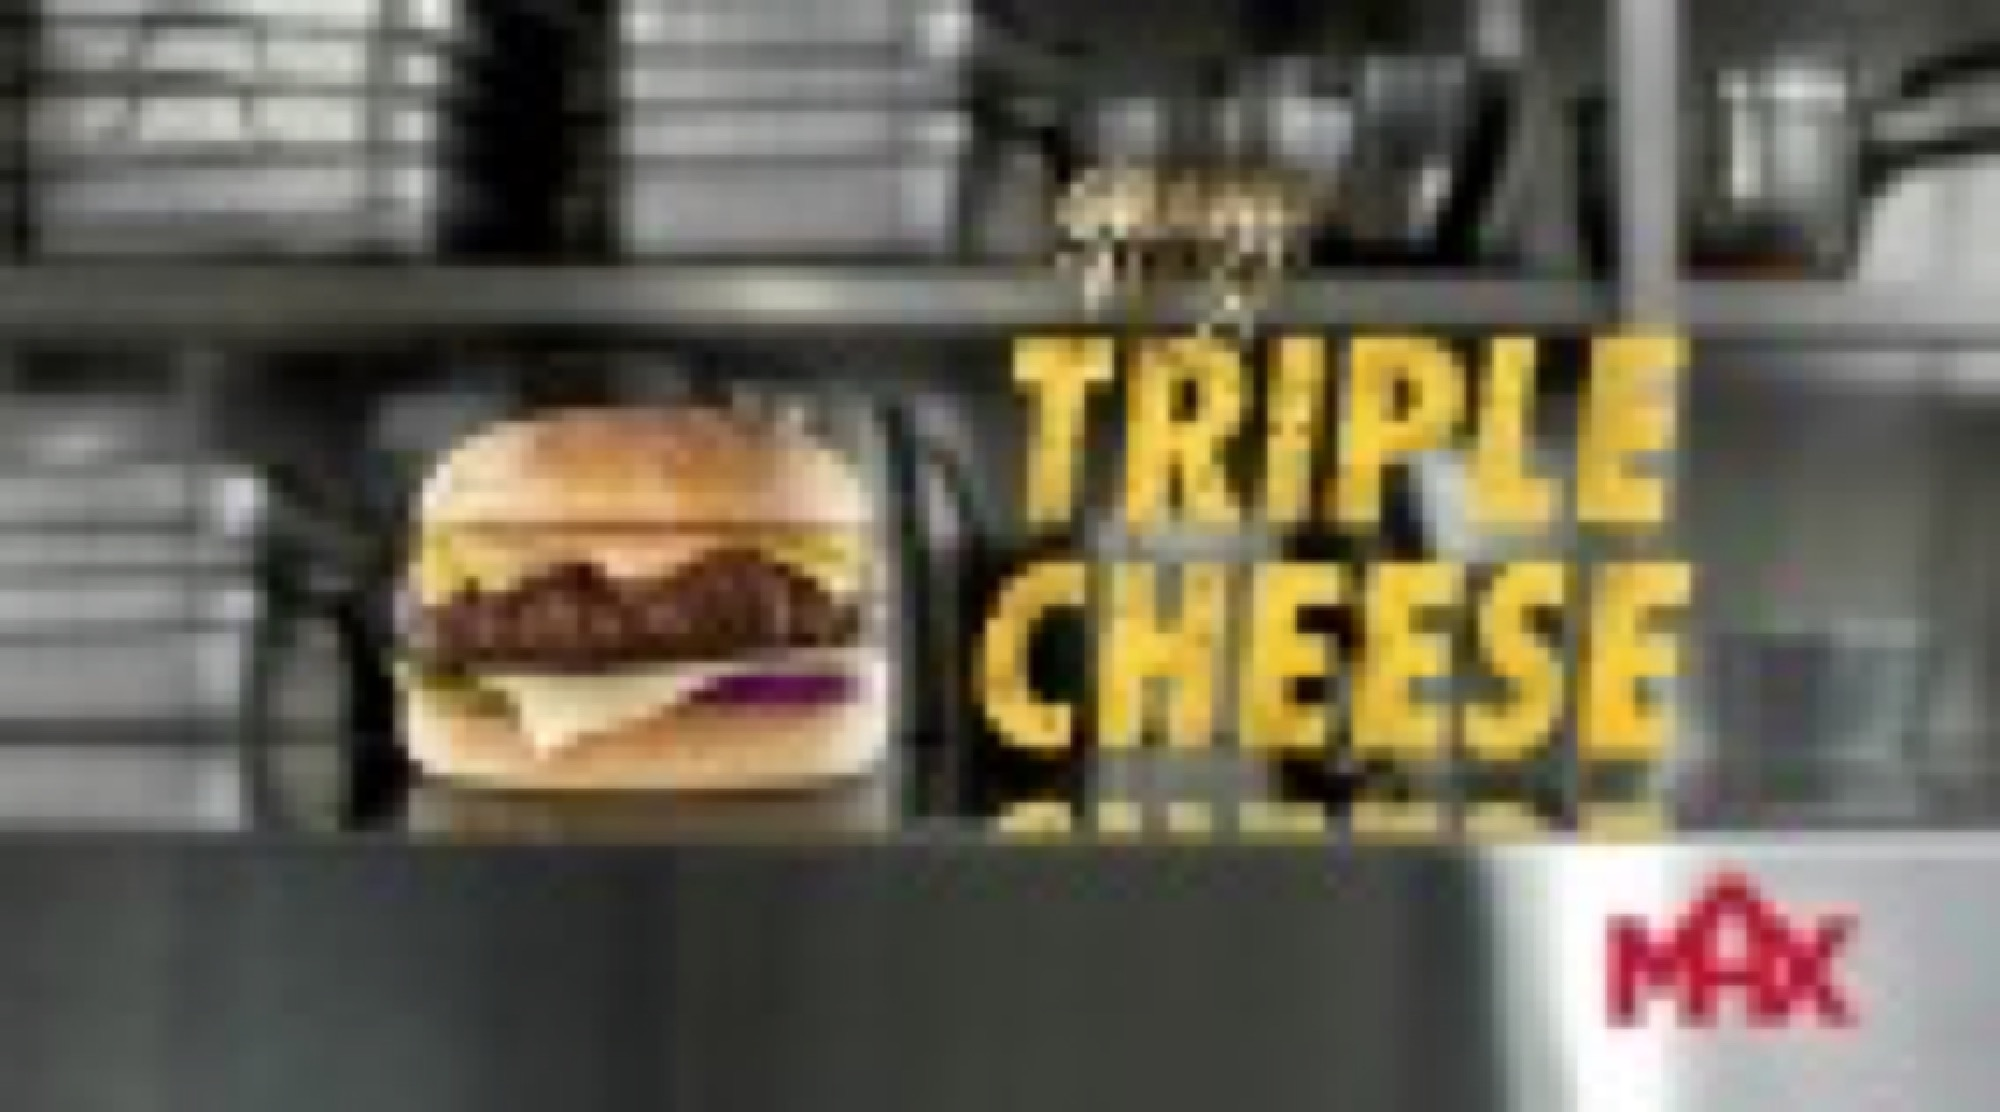 Max Tripple Cheese